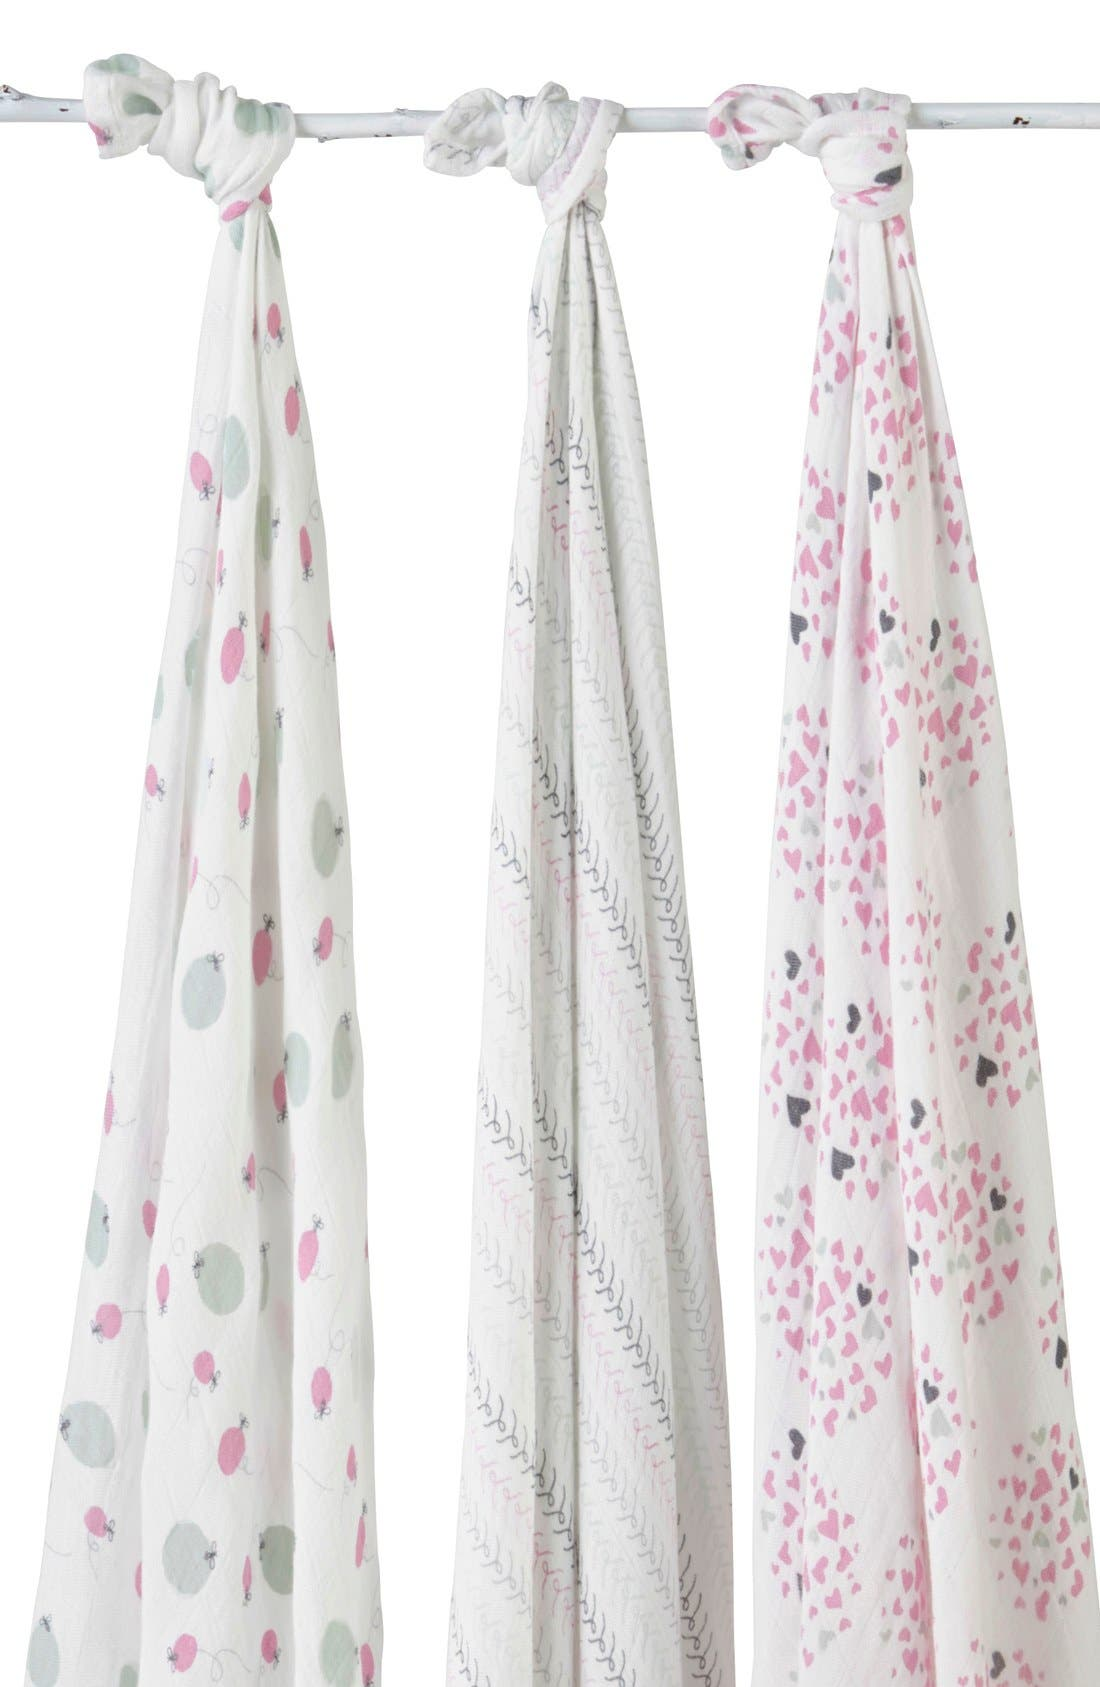 Alternate Image 1 Selected - aden + anais 'Hearts & Fireflies' Swaddling Cloths (3-Pack) (Nordstrom Exclusive)